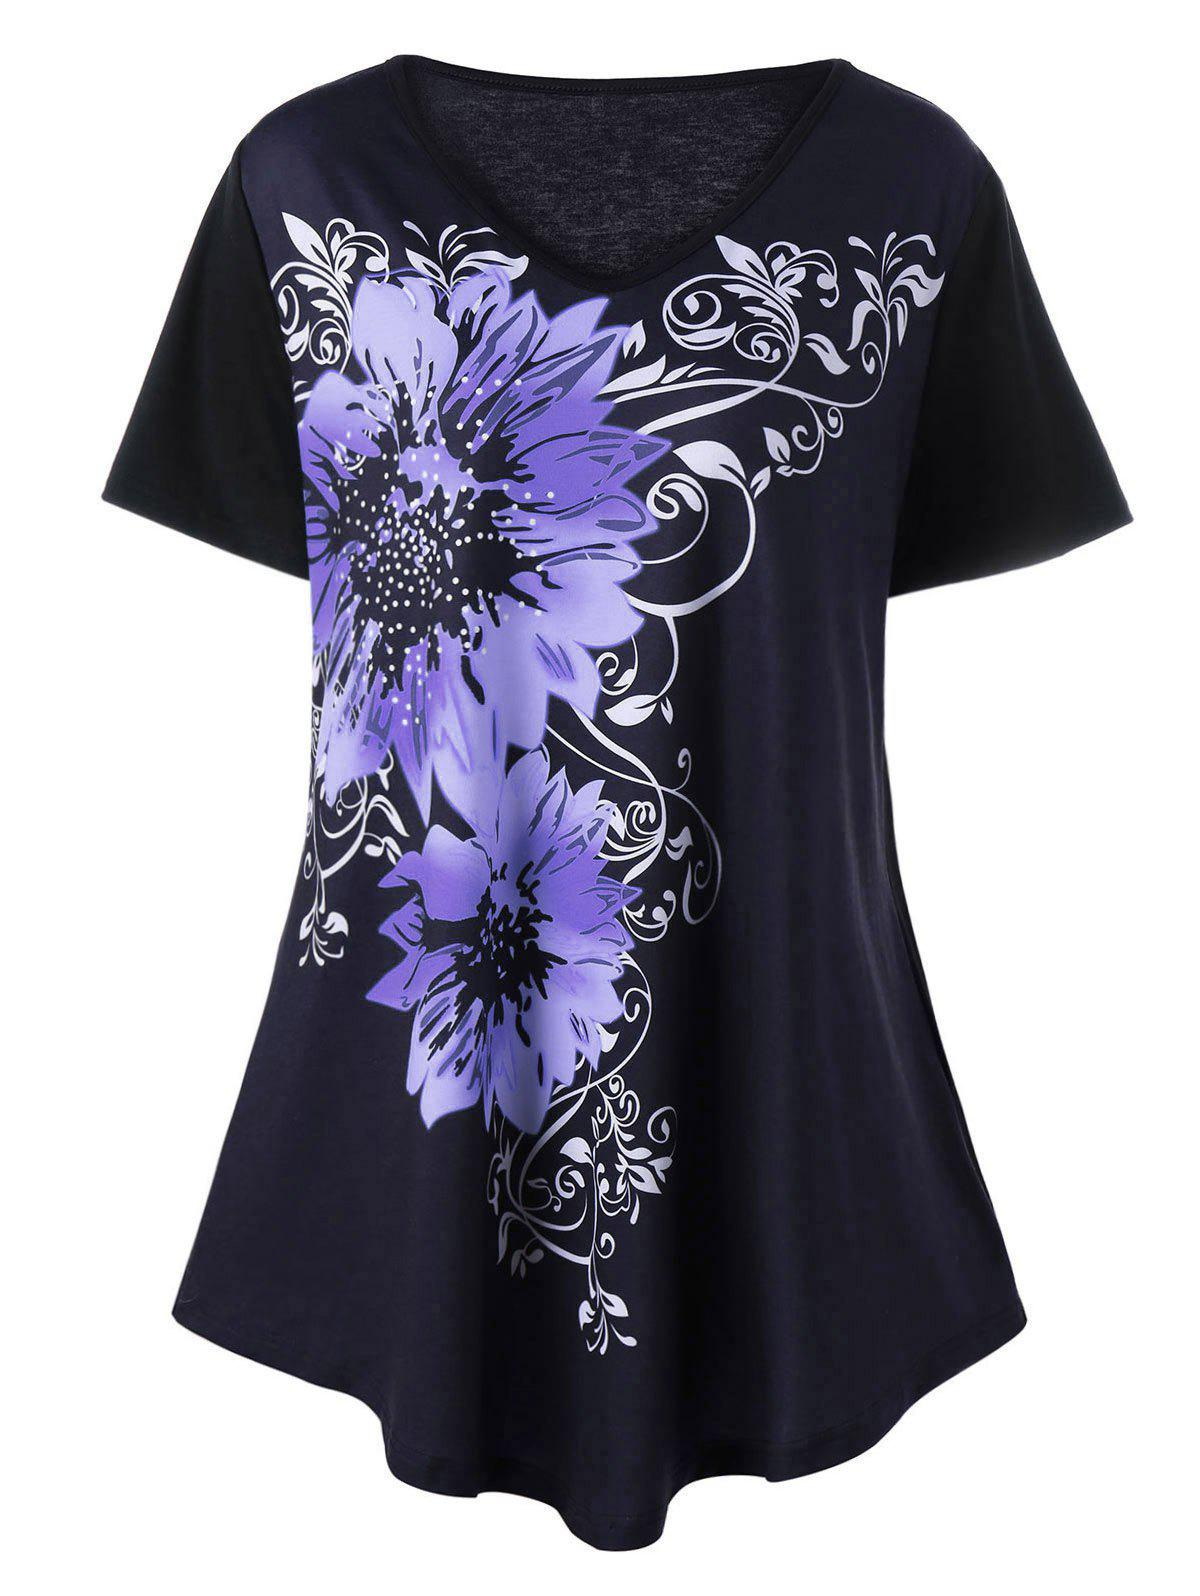 Plus Size V Neck Floral Graphic T-ShirtWOMEN<br><br>Size: XL; Color: PURPLE; Material: Cotton,Cotton Blends; Shirt Length: Regular; Sleeve Length: Short; Collar: V-Neck; Style: Fashion; Season: Spring,Summer; Pattern Type: Floral; Weight: 0.2800kg; Package Contents: 1 x Tee;